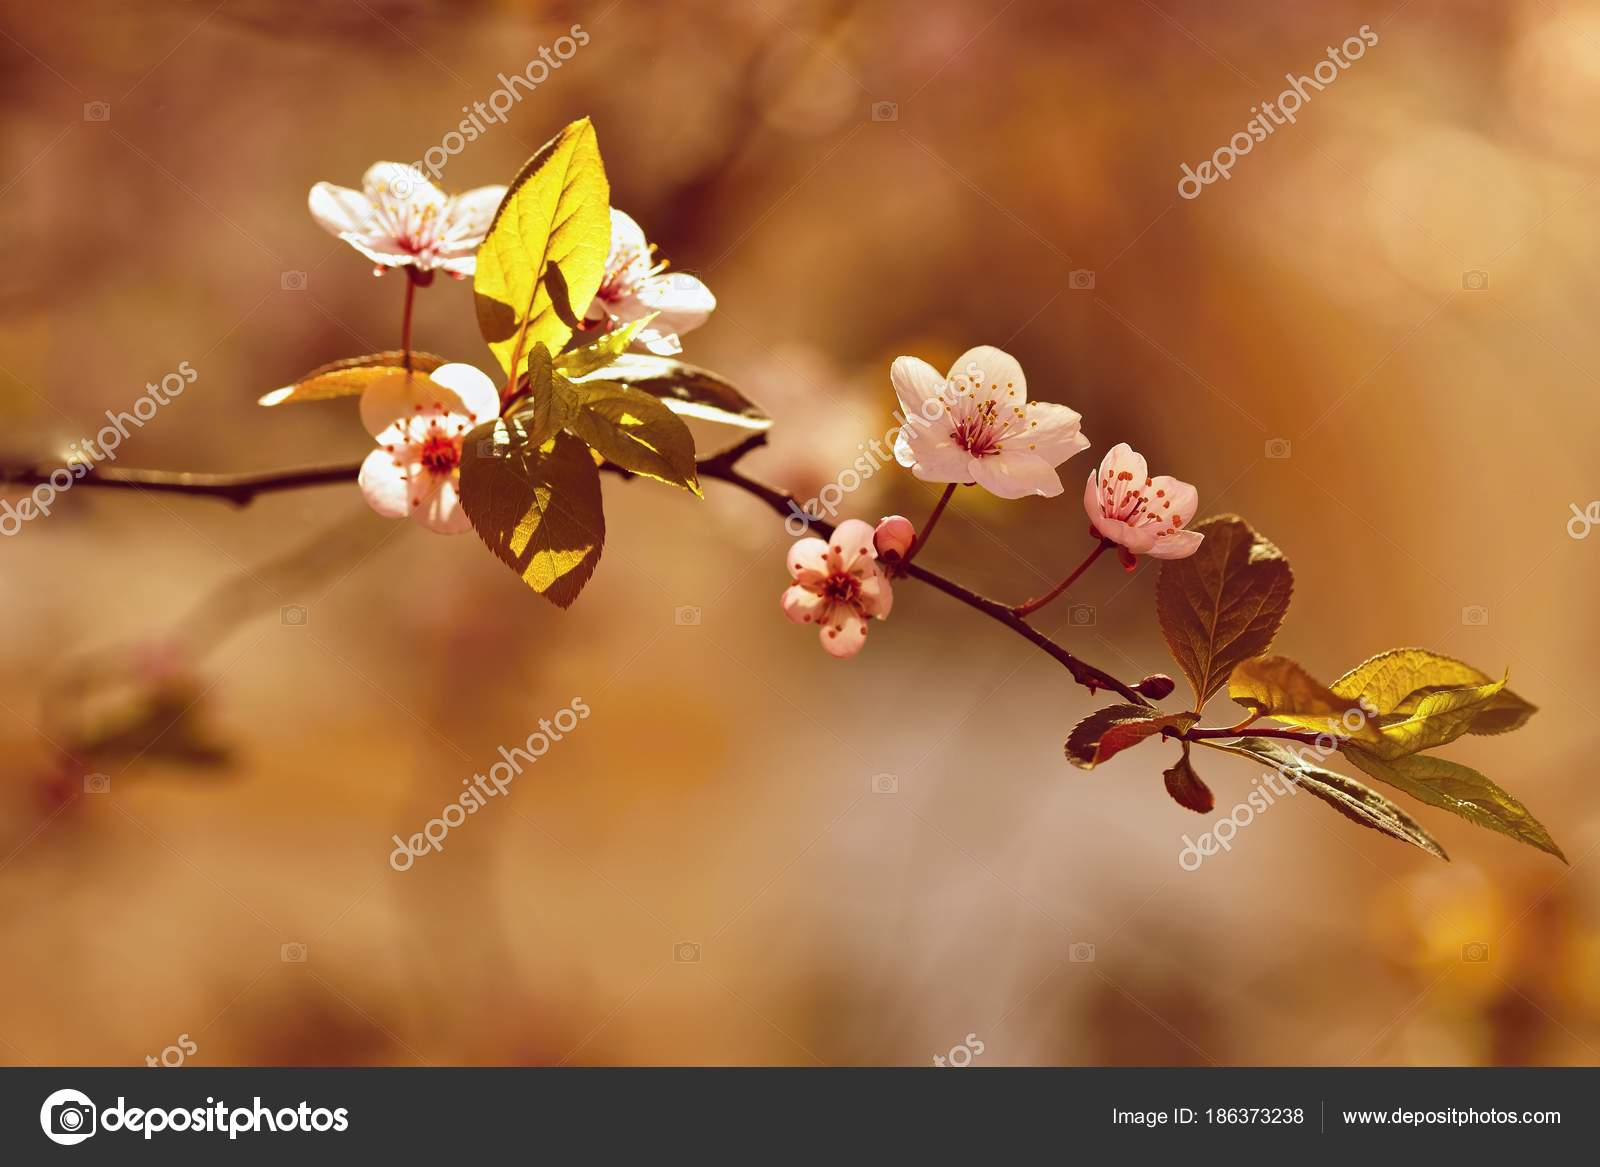 Spring Flowers Colorful Nature Seasonal Concept For Springtime